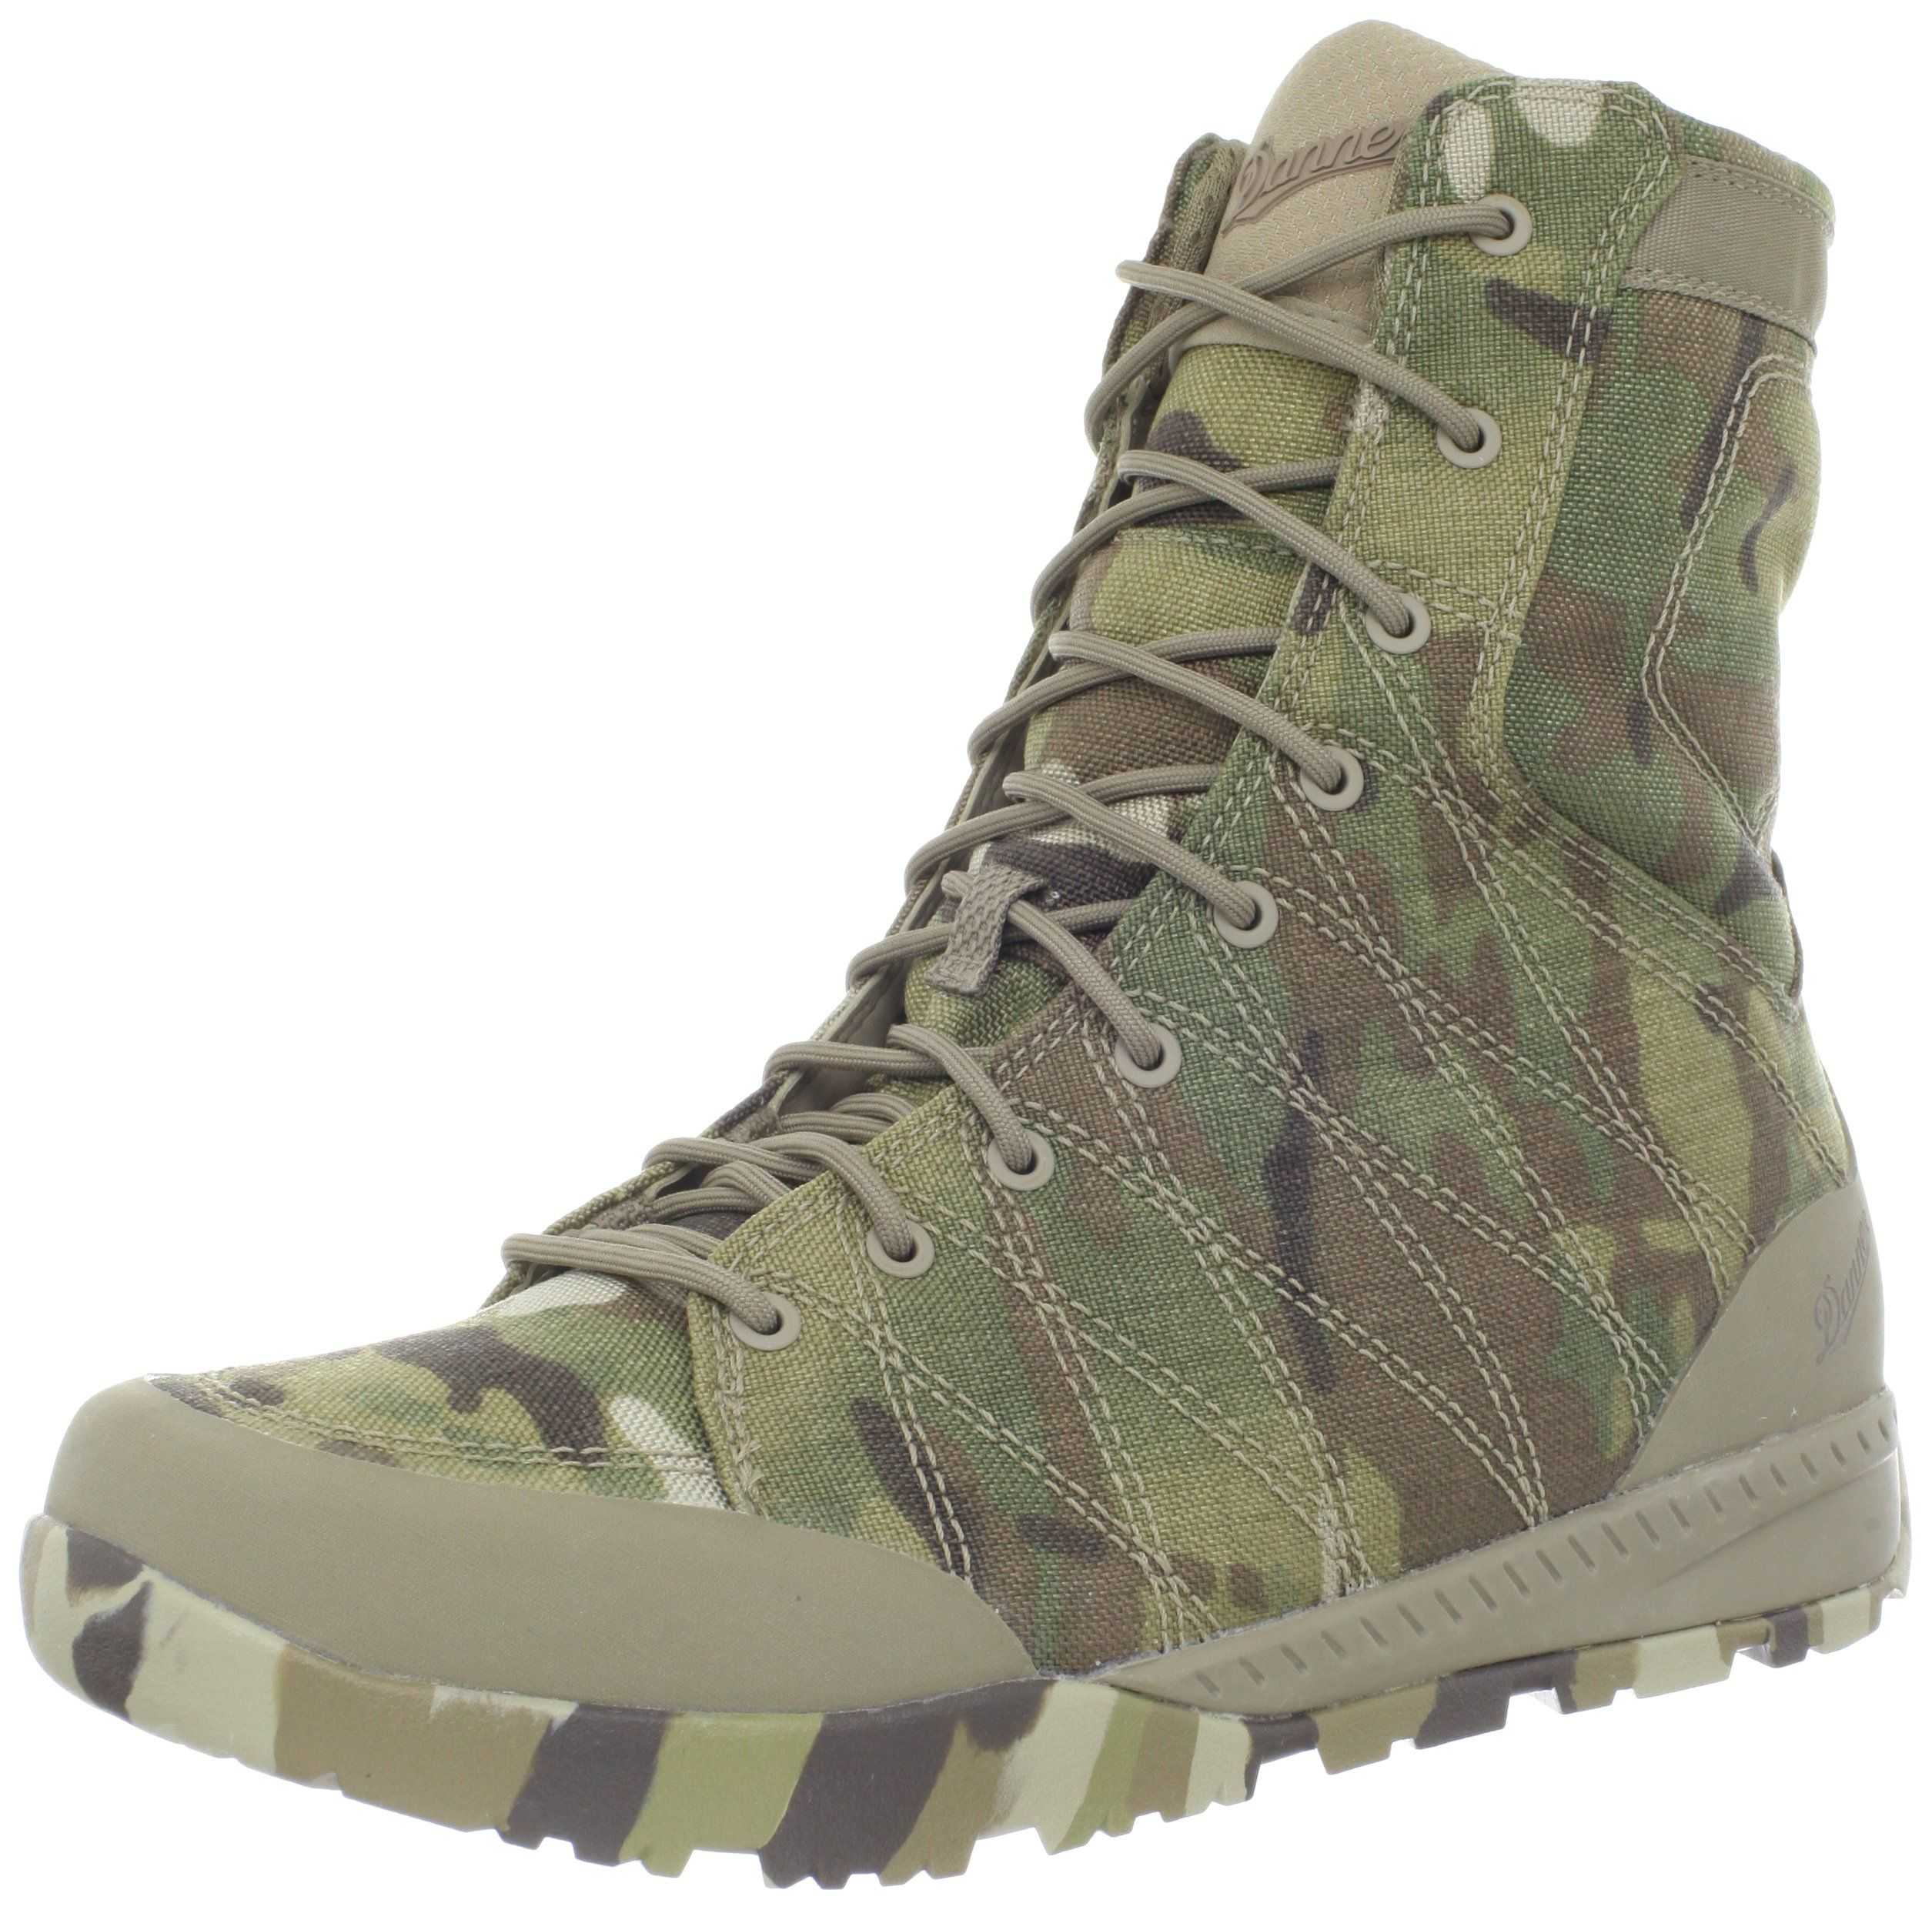 Boots Danner Men S Melee 8 Inch Work Boot Multi Camoflouge 12 Ee Us Boots Military Boots Shoe Inspiration